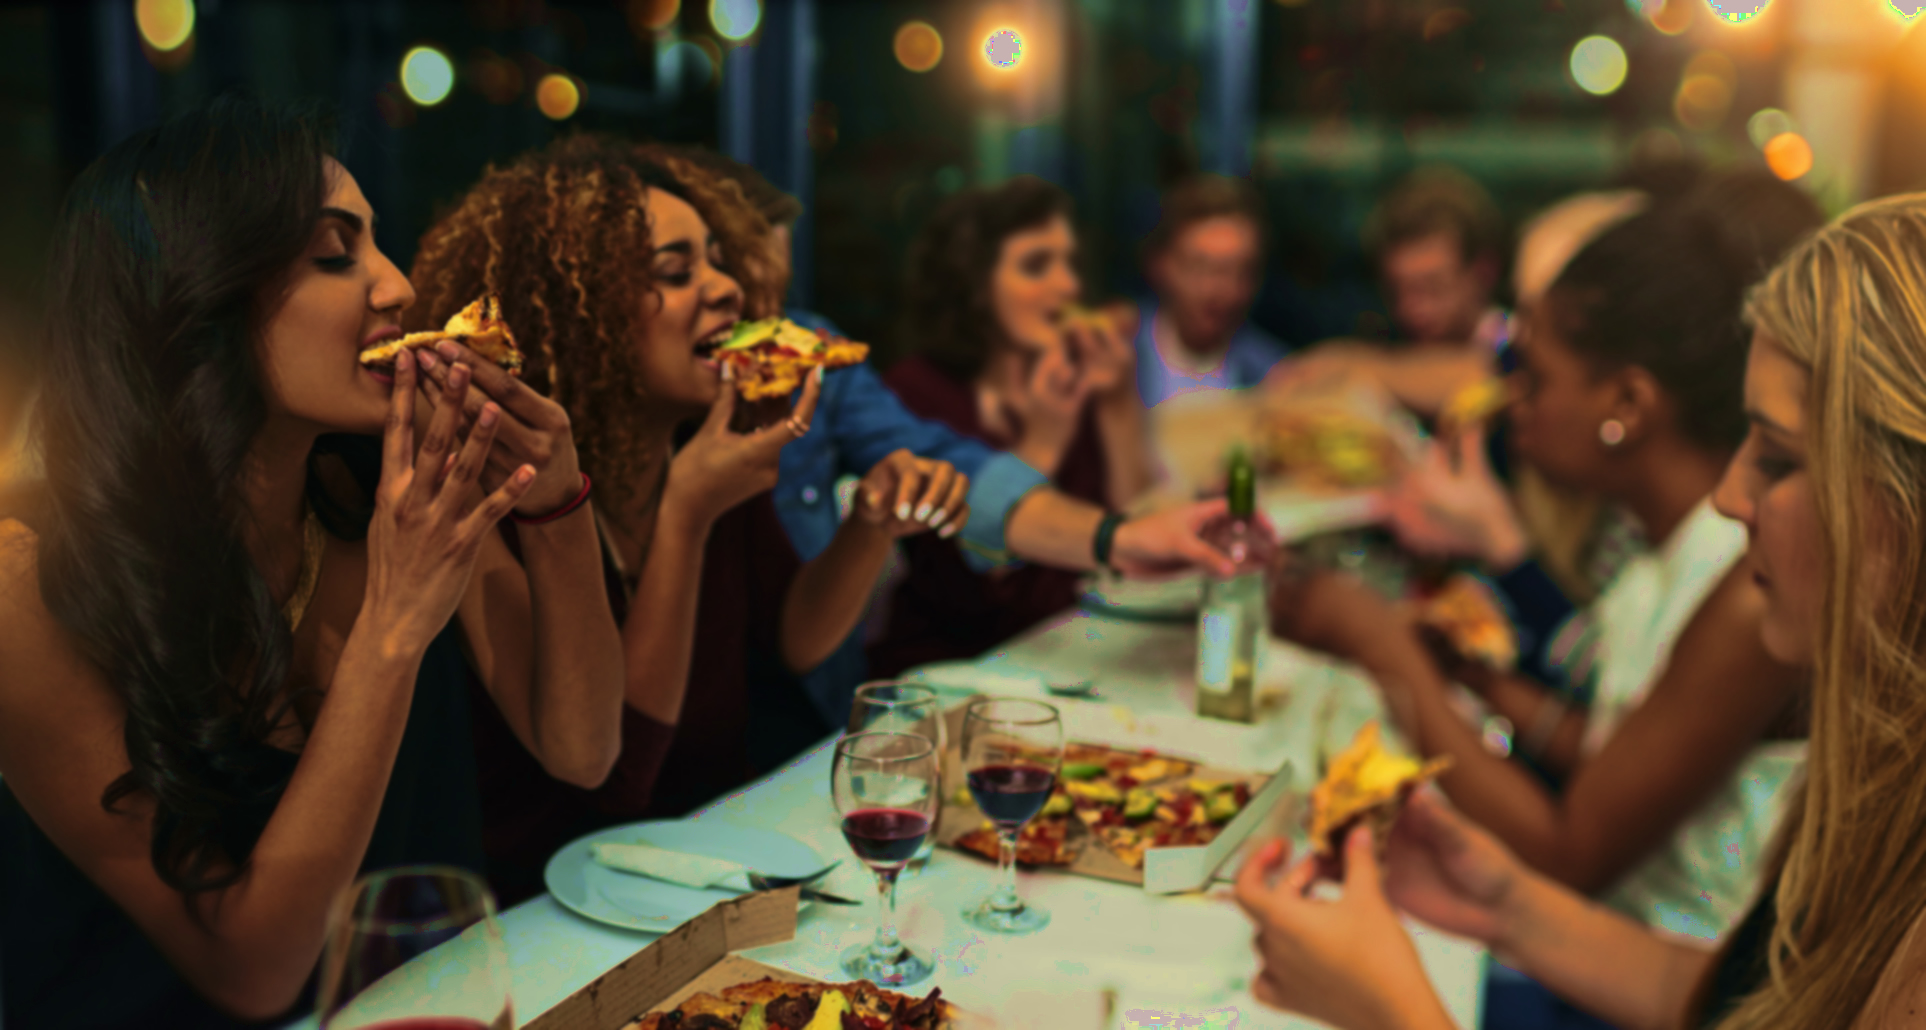 Group-of-friends-eating-pizza-and-drinking-wine